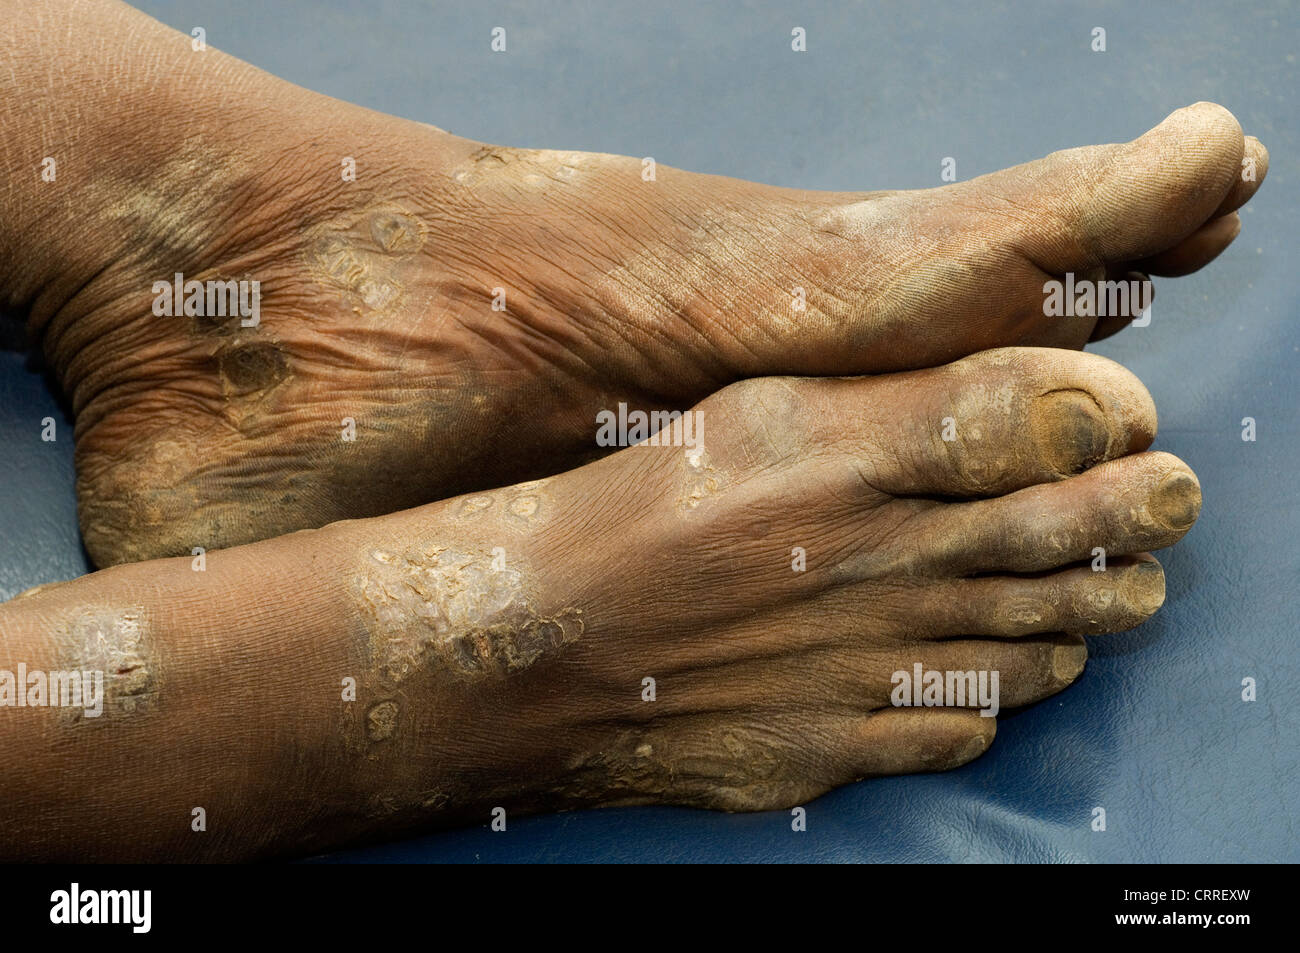 A woman develops scaly plaques on her feet. The etiology is unknown. - Stock Image